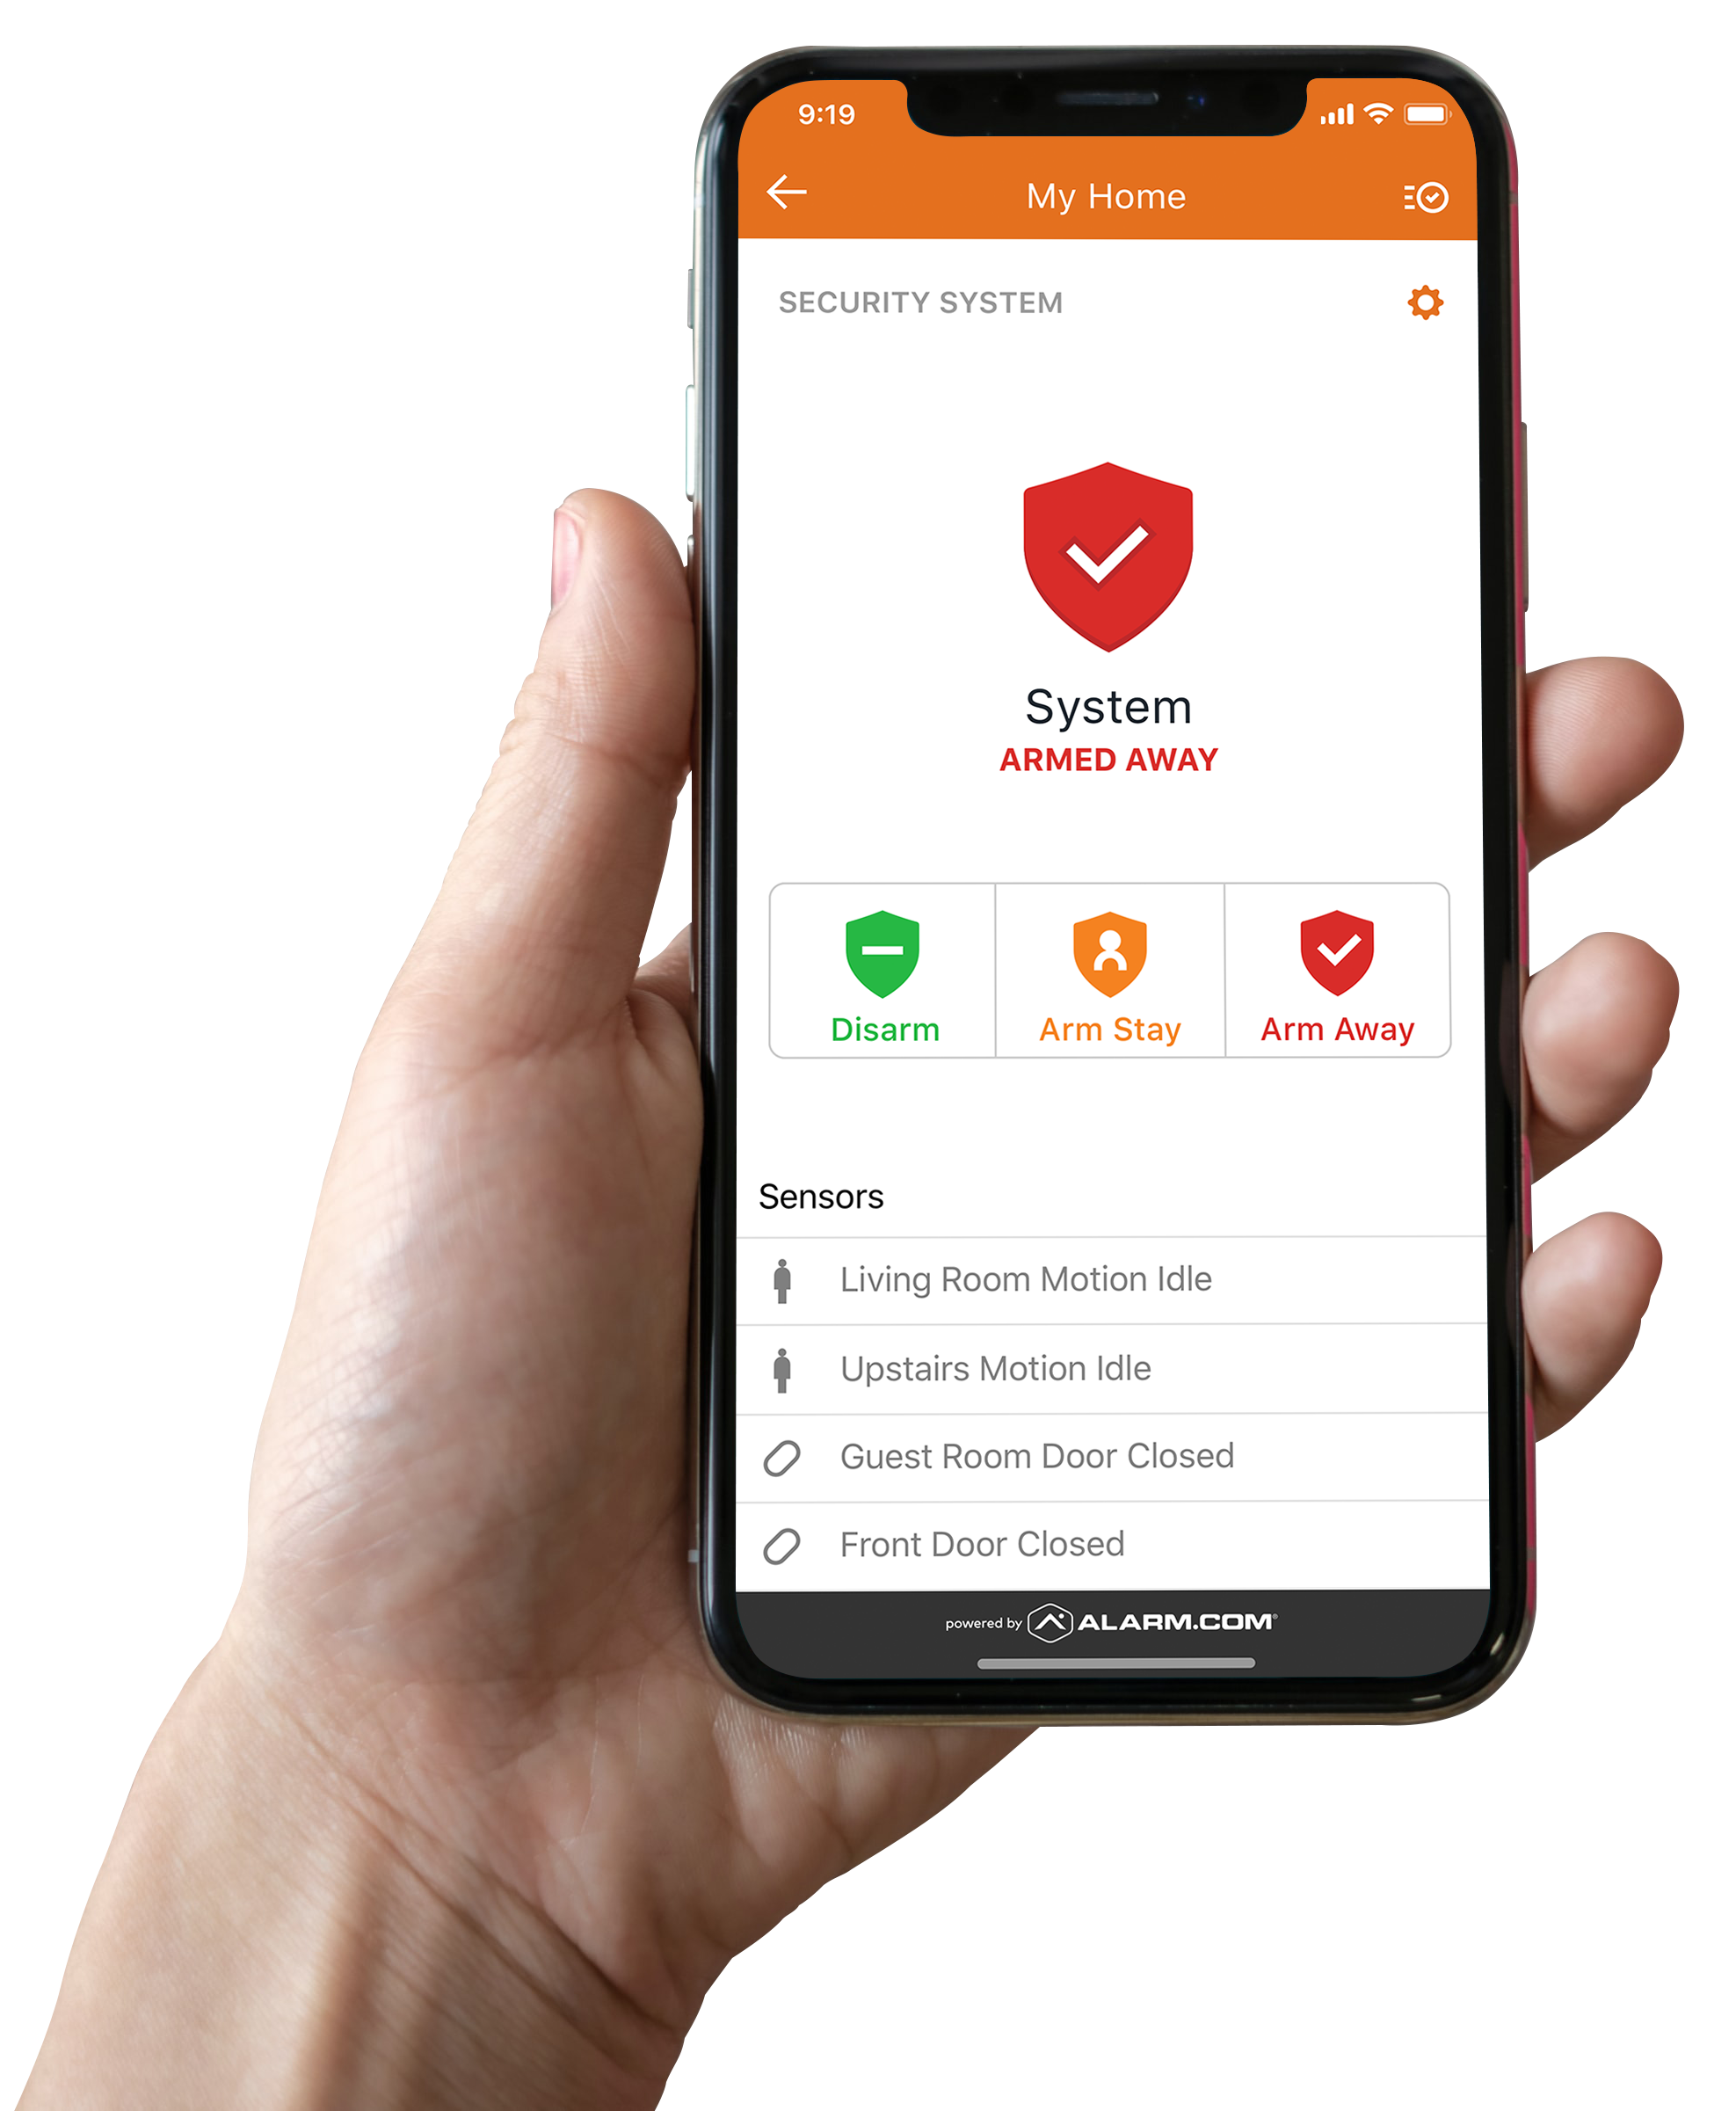 Hand holding phone with alarm.com app on the screen